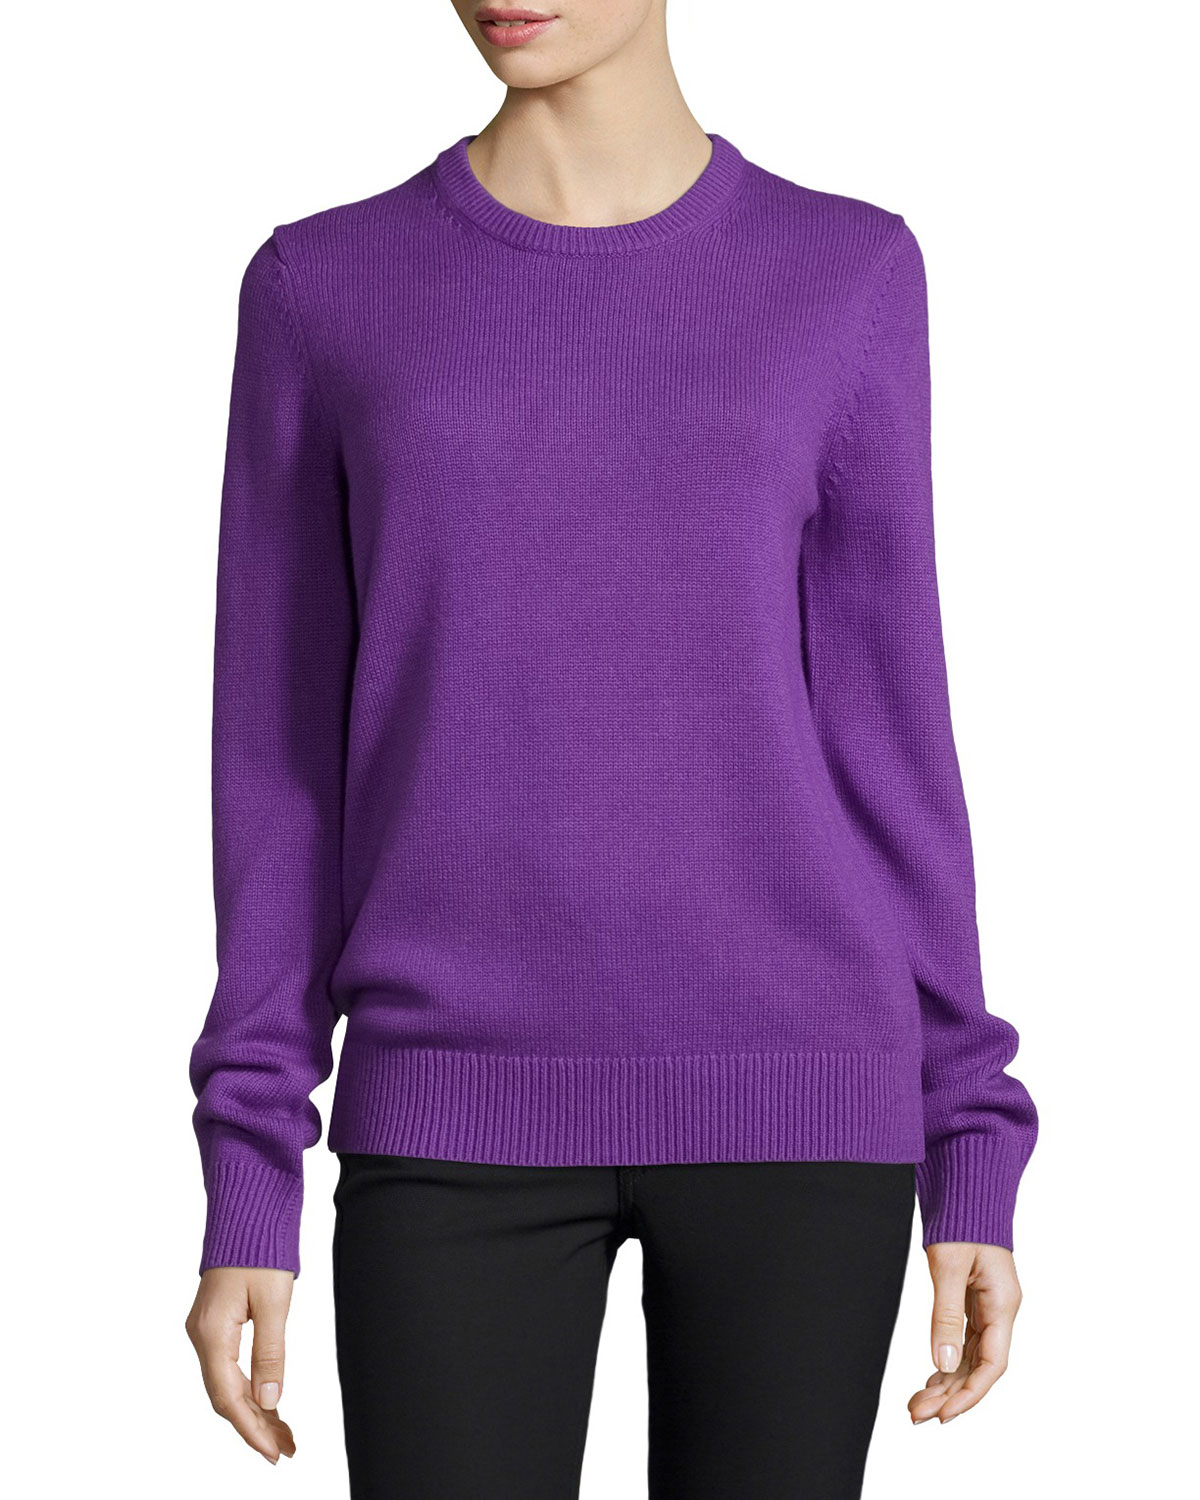 Michael Kors Collection Cashmere-Blend Long-Sleeve Sweater, Lilac (Purple), Women's, Size: L